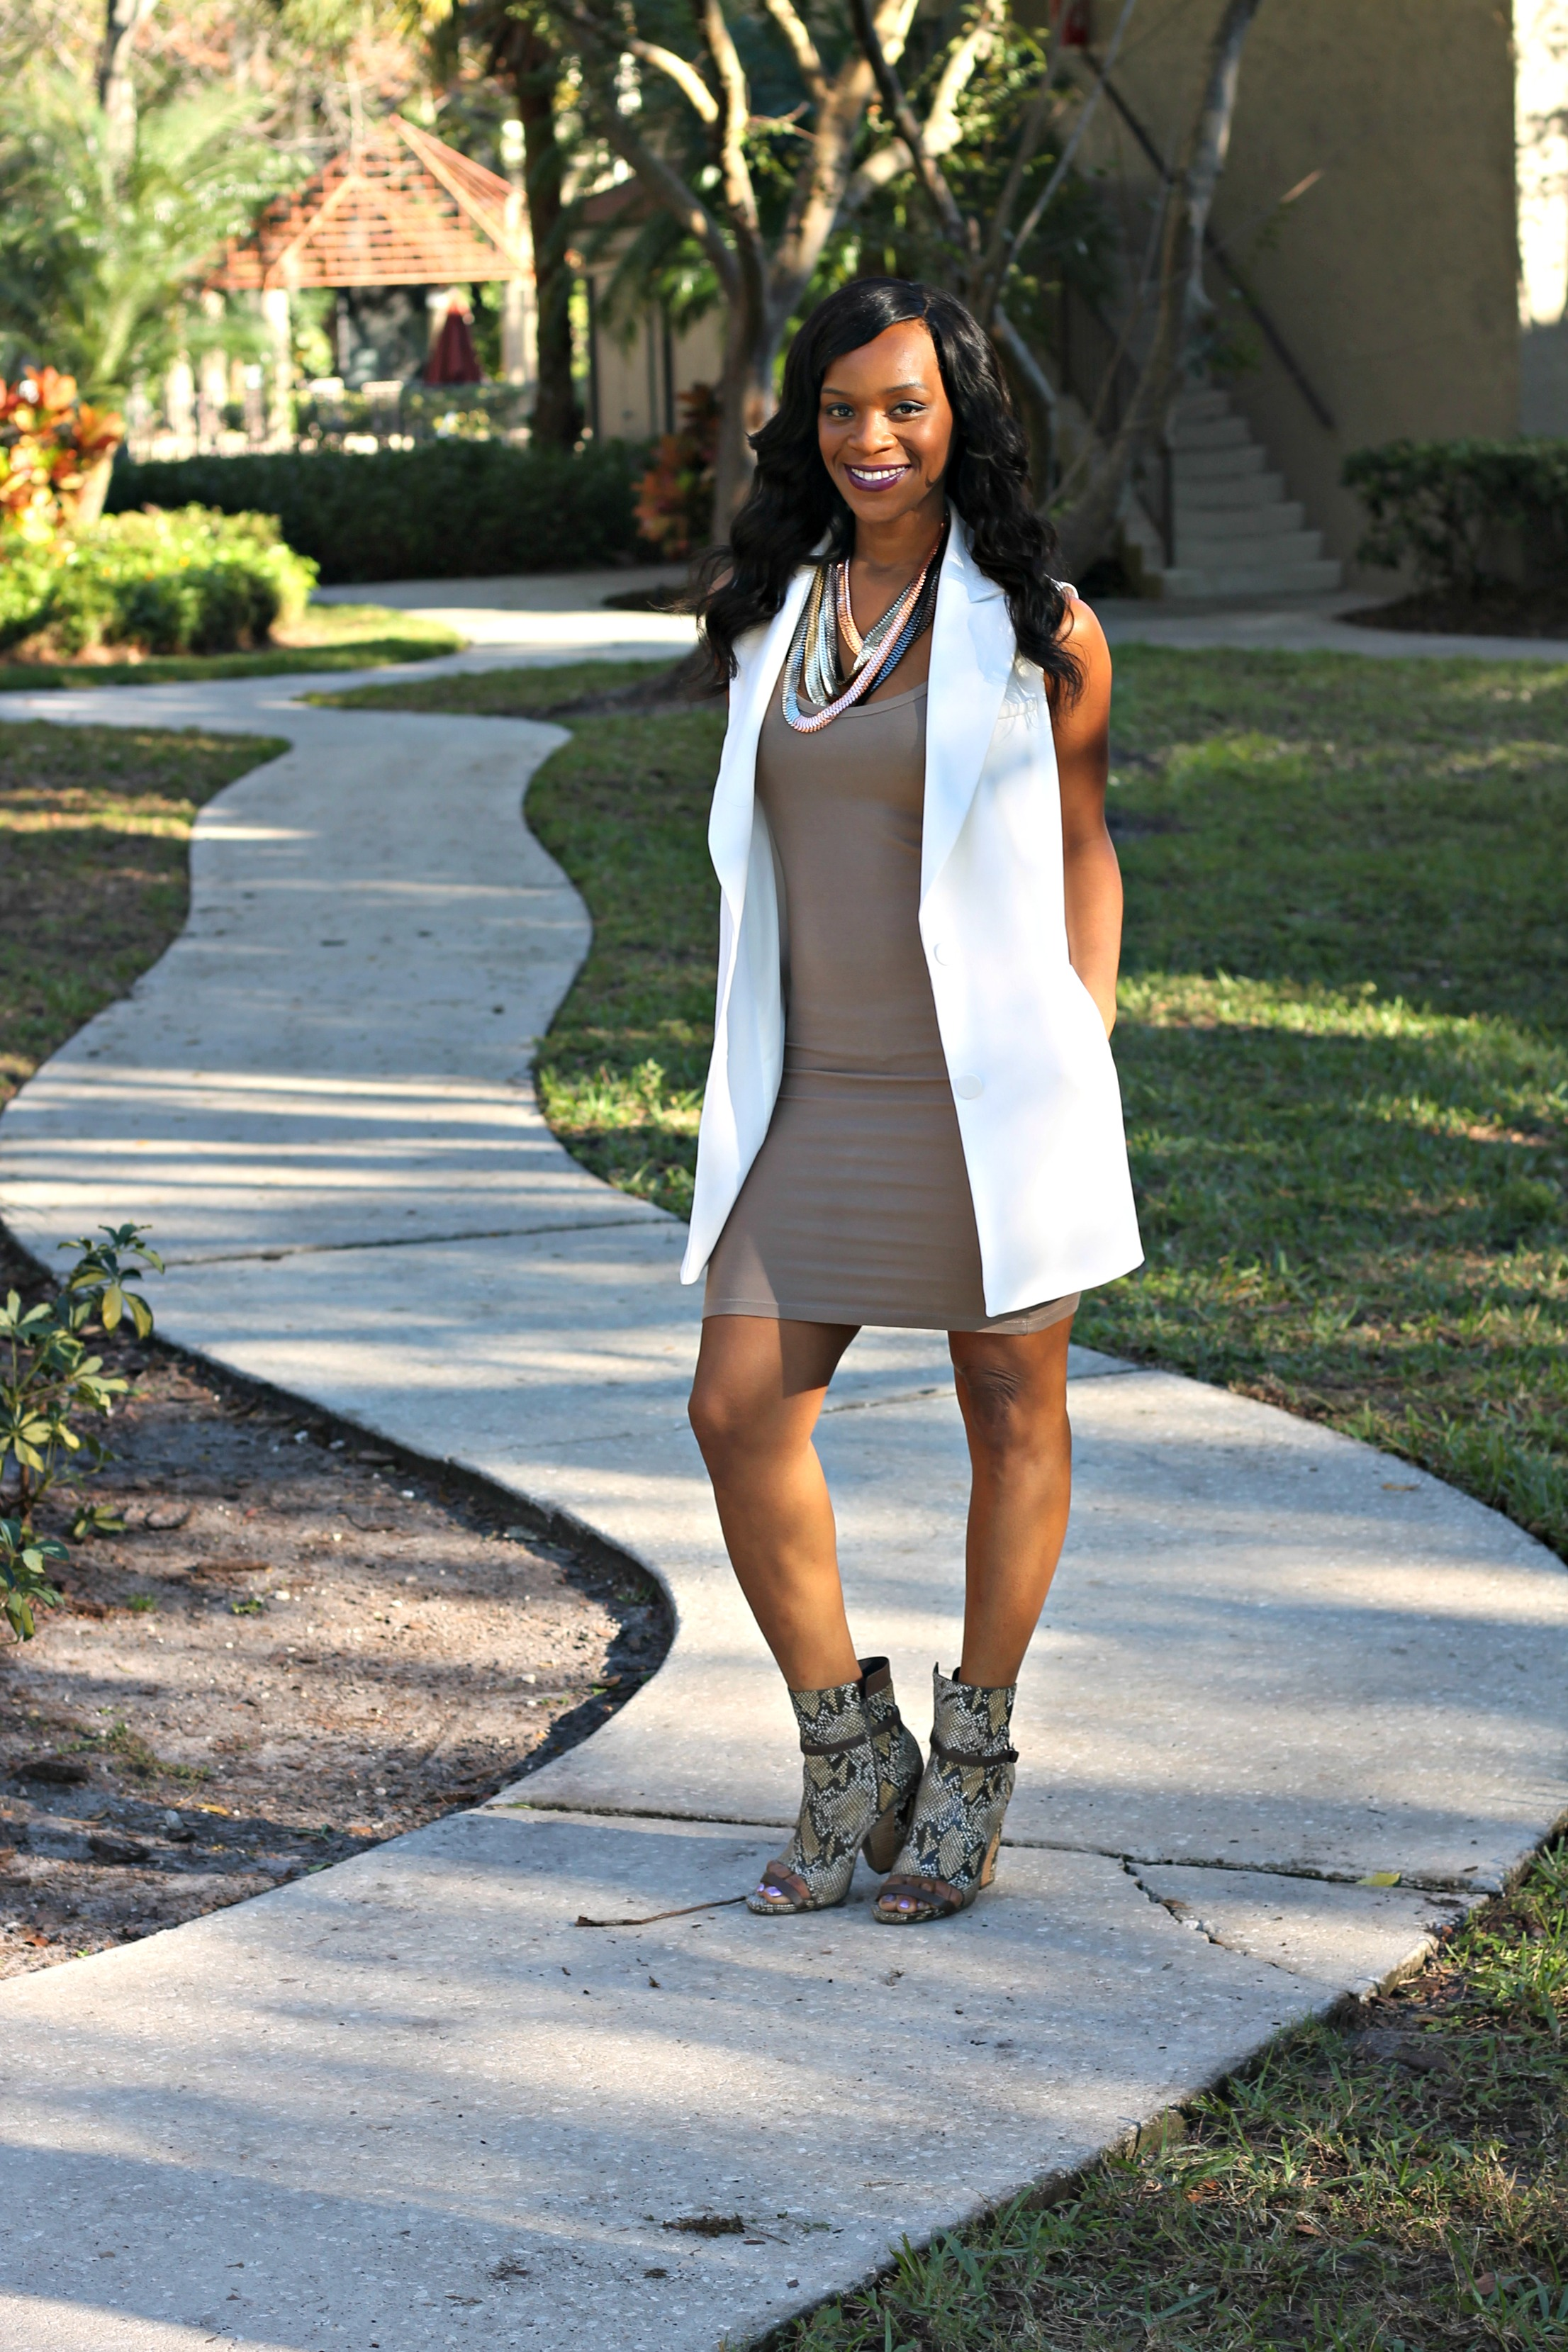 Taupe Dress And Orange Shoes